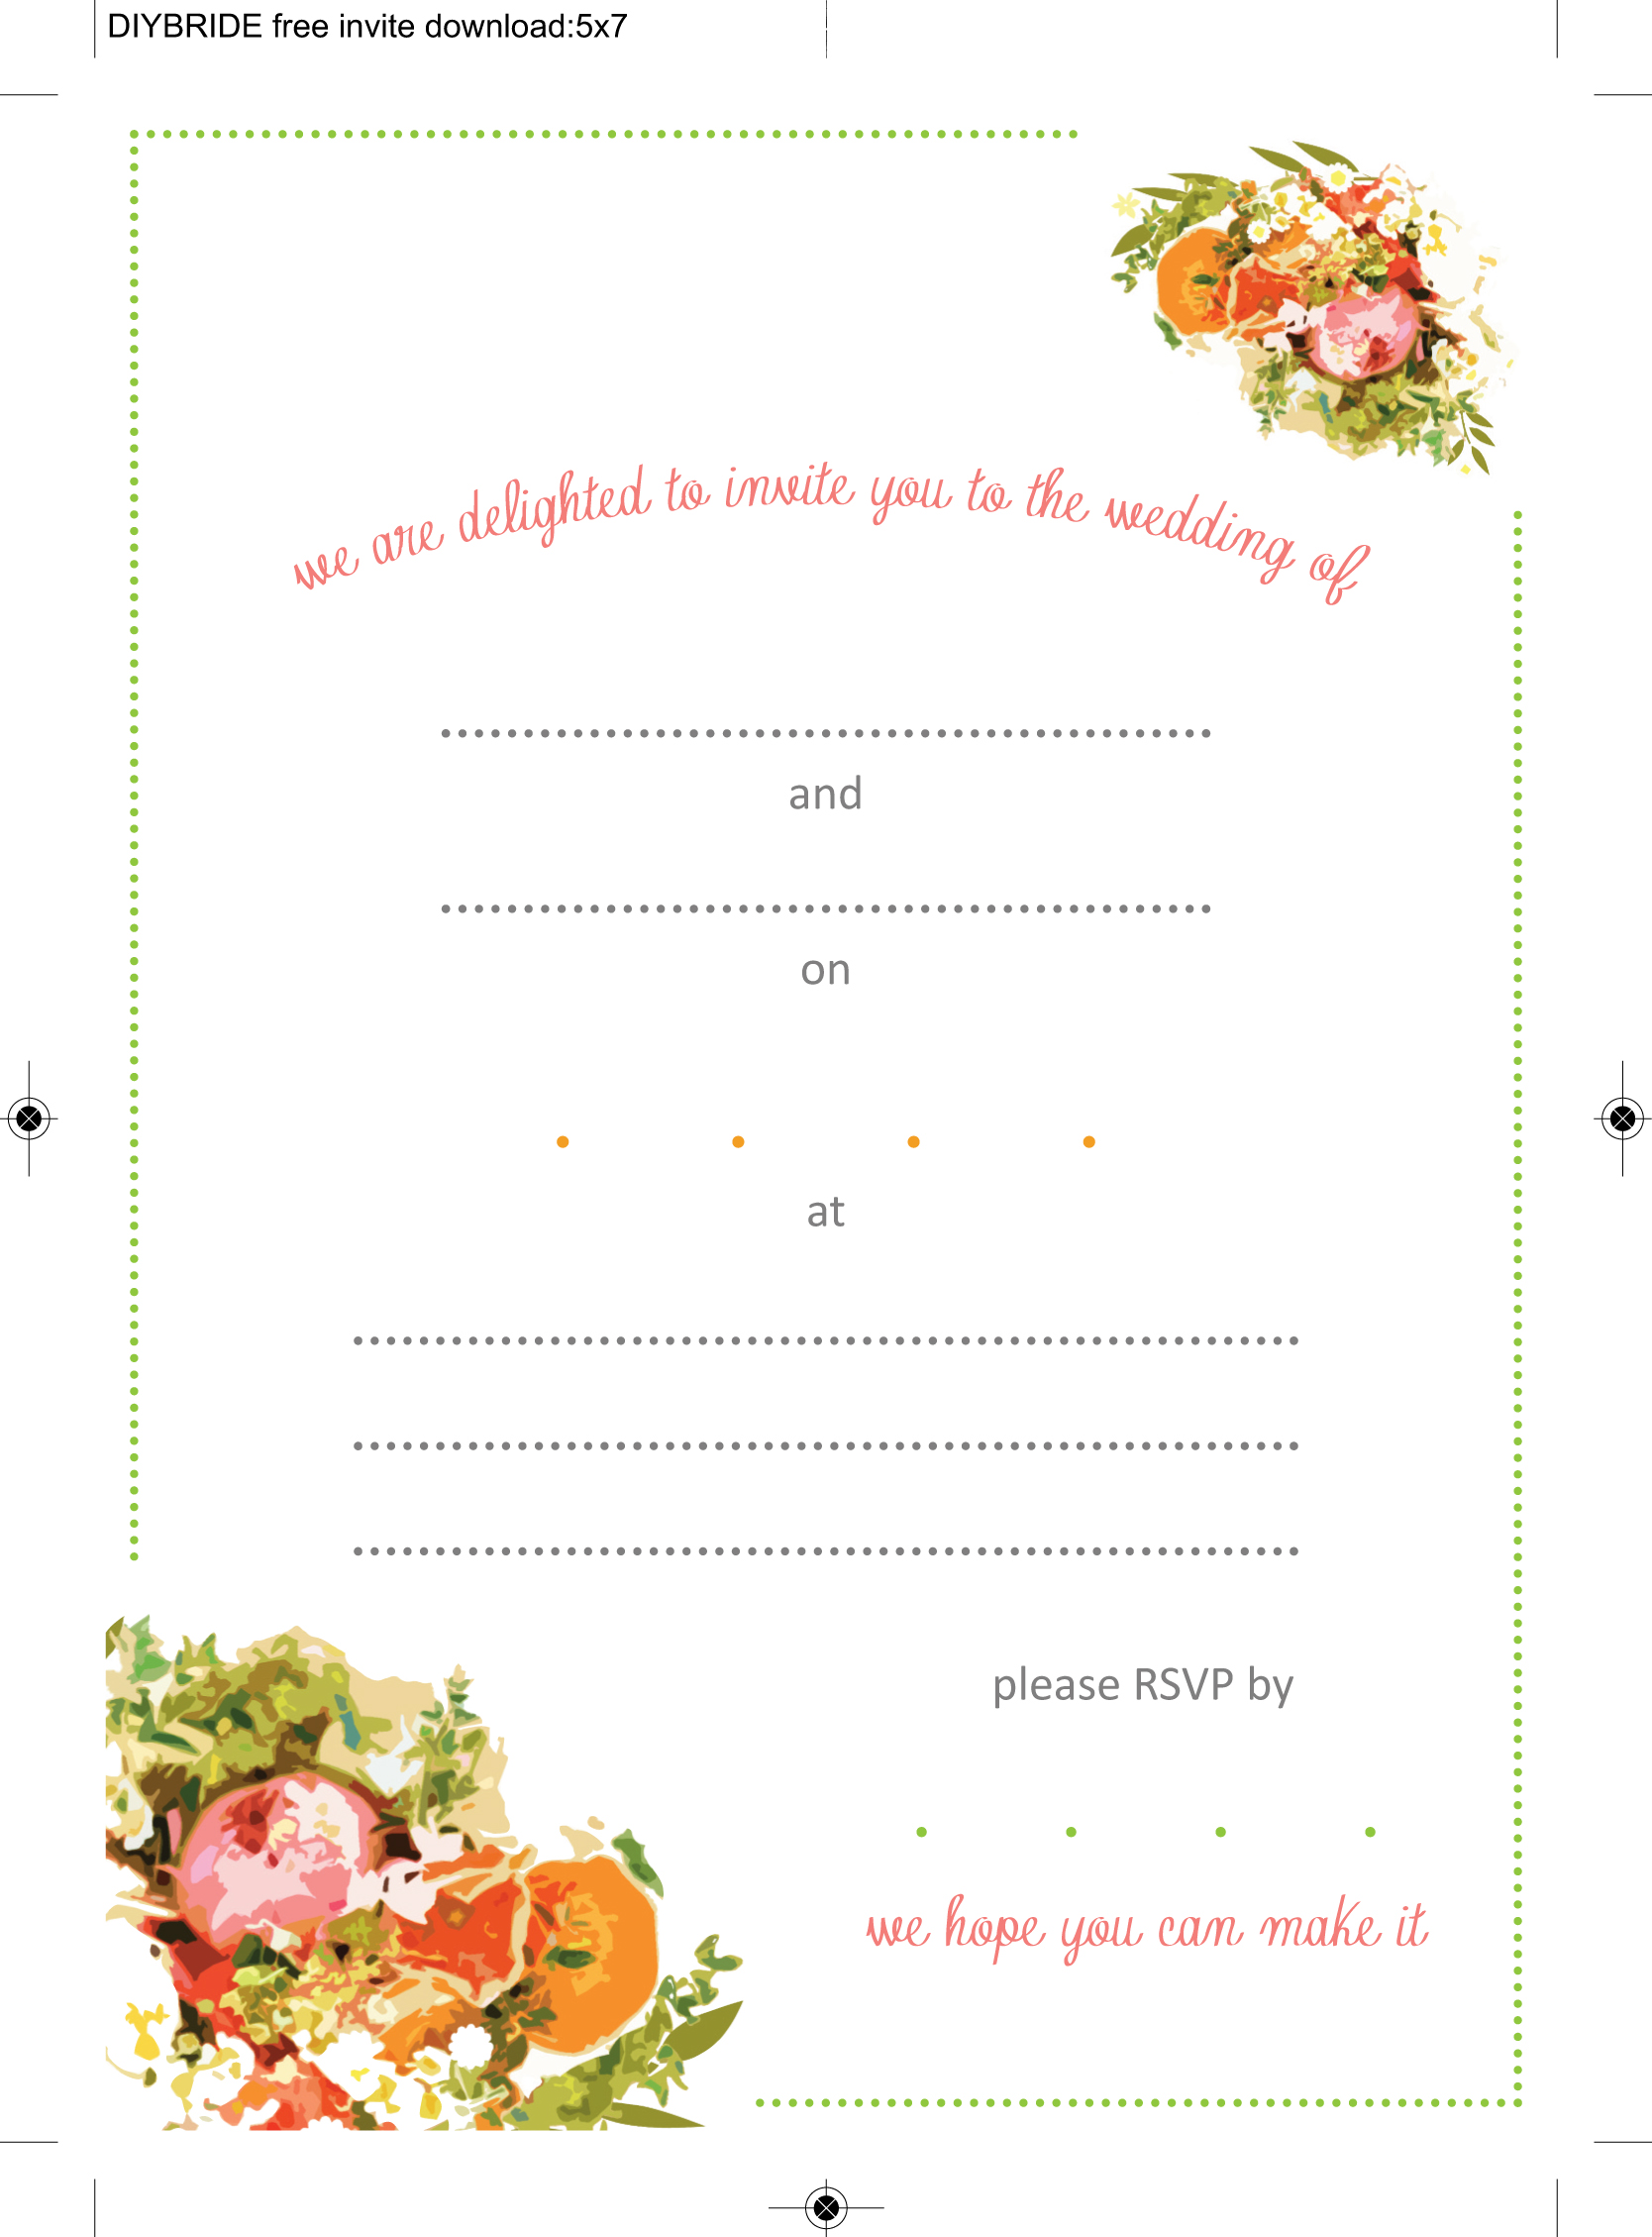 Wedding Invitation Templates That Are Cute And Easy To Make The - Wedding invitation templates: wedding invitation card design template free download